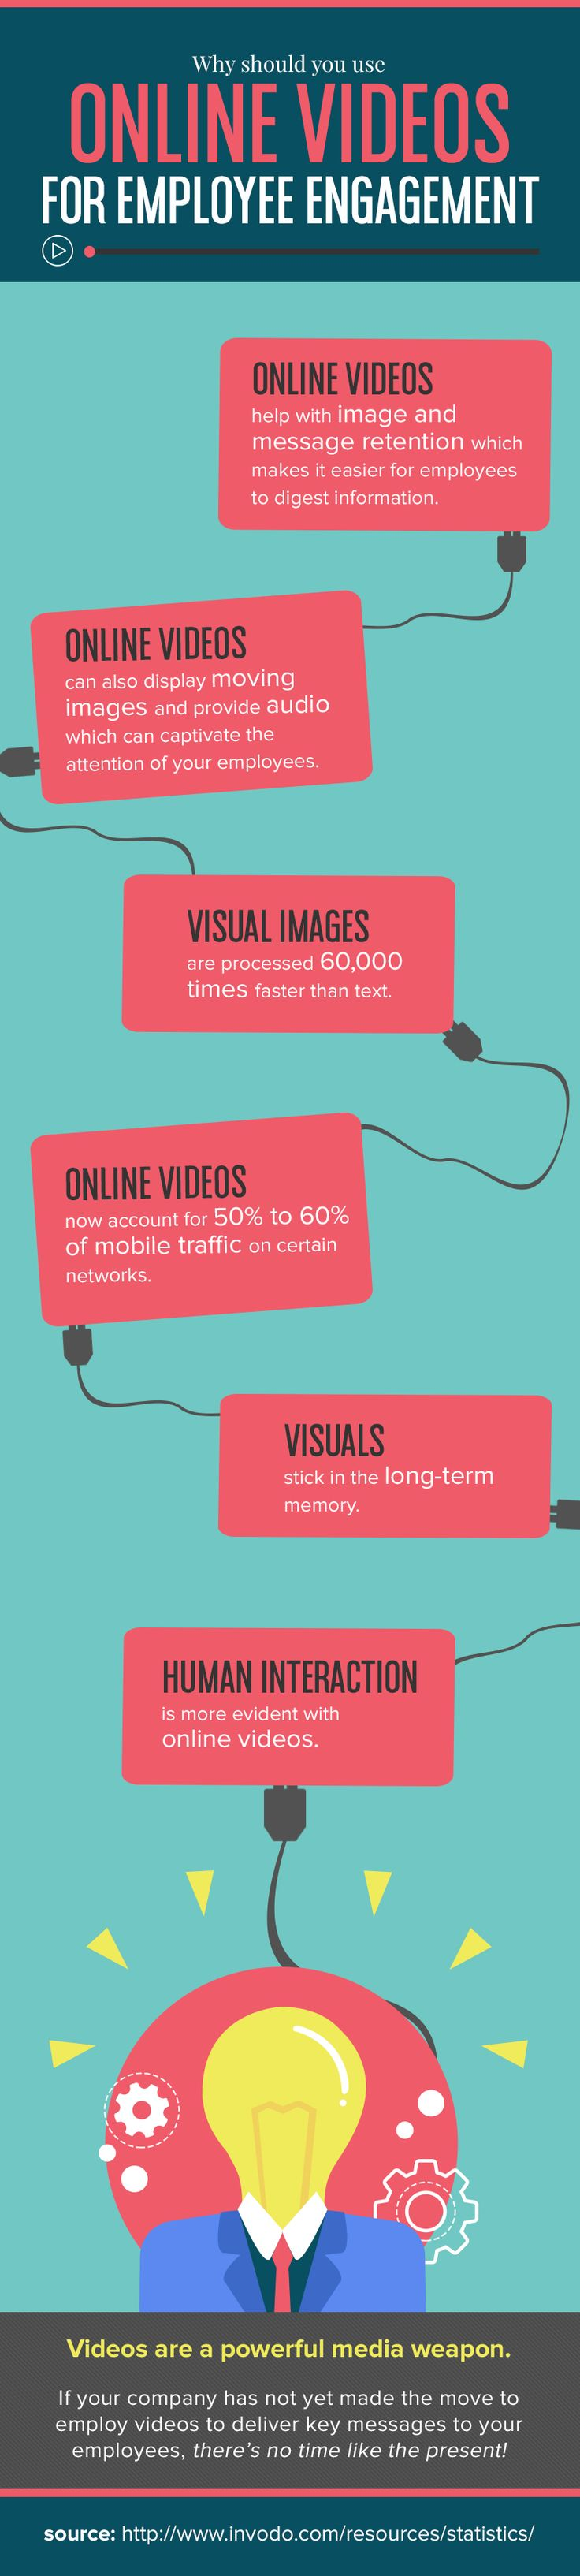 #Infographic: Why You Should Use Online Videos For Employee Engagement? http://www.kontiki.com/webcasting/